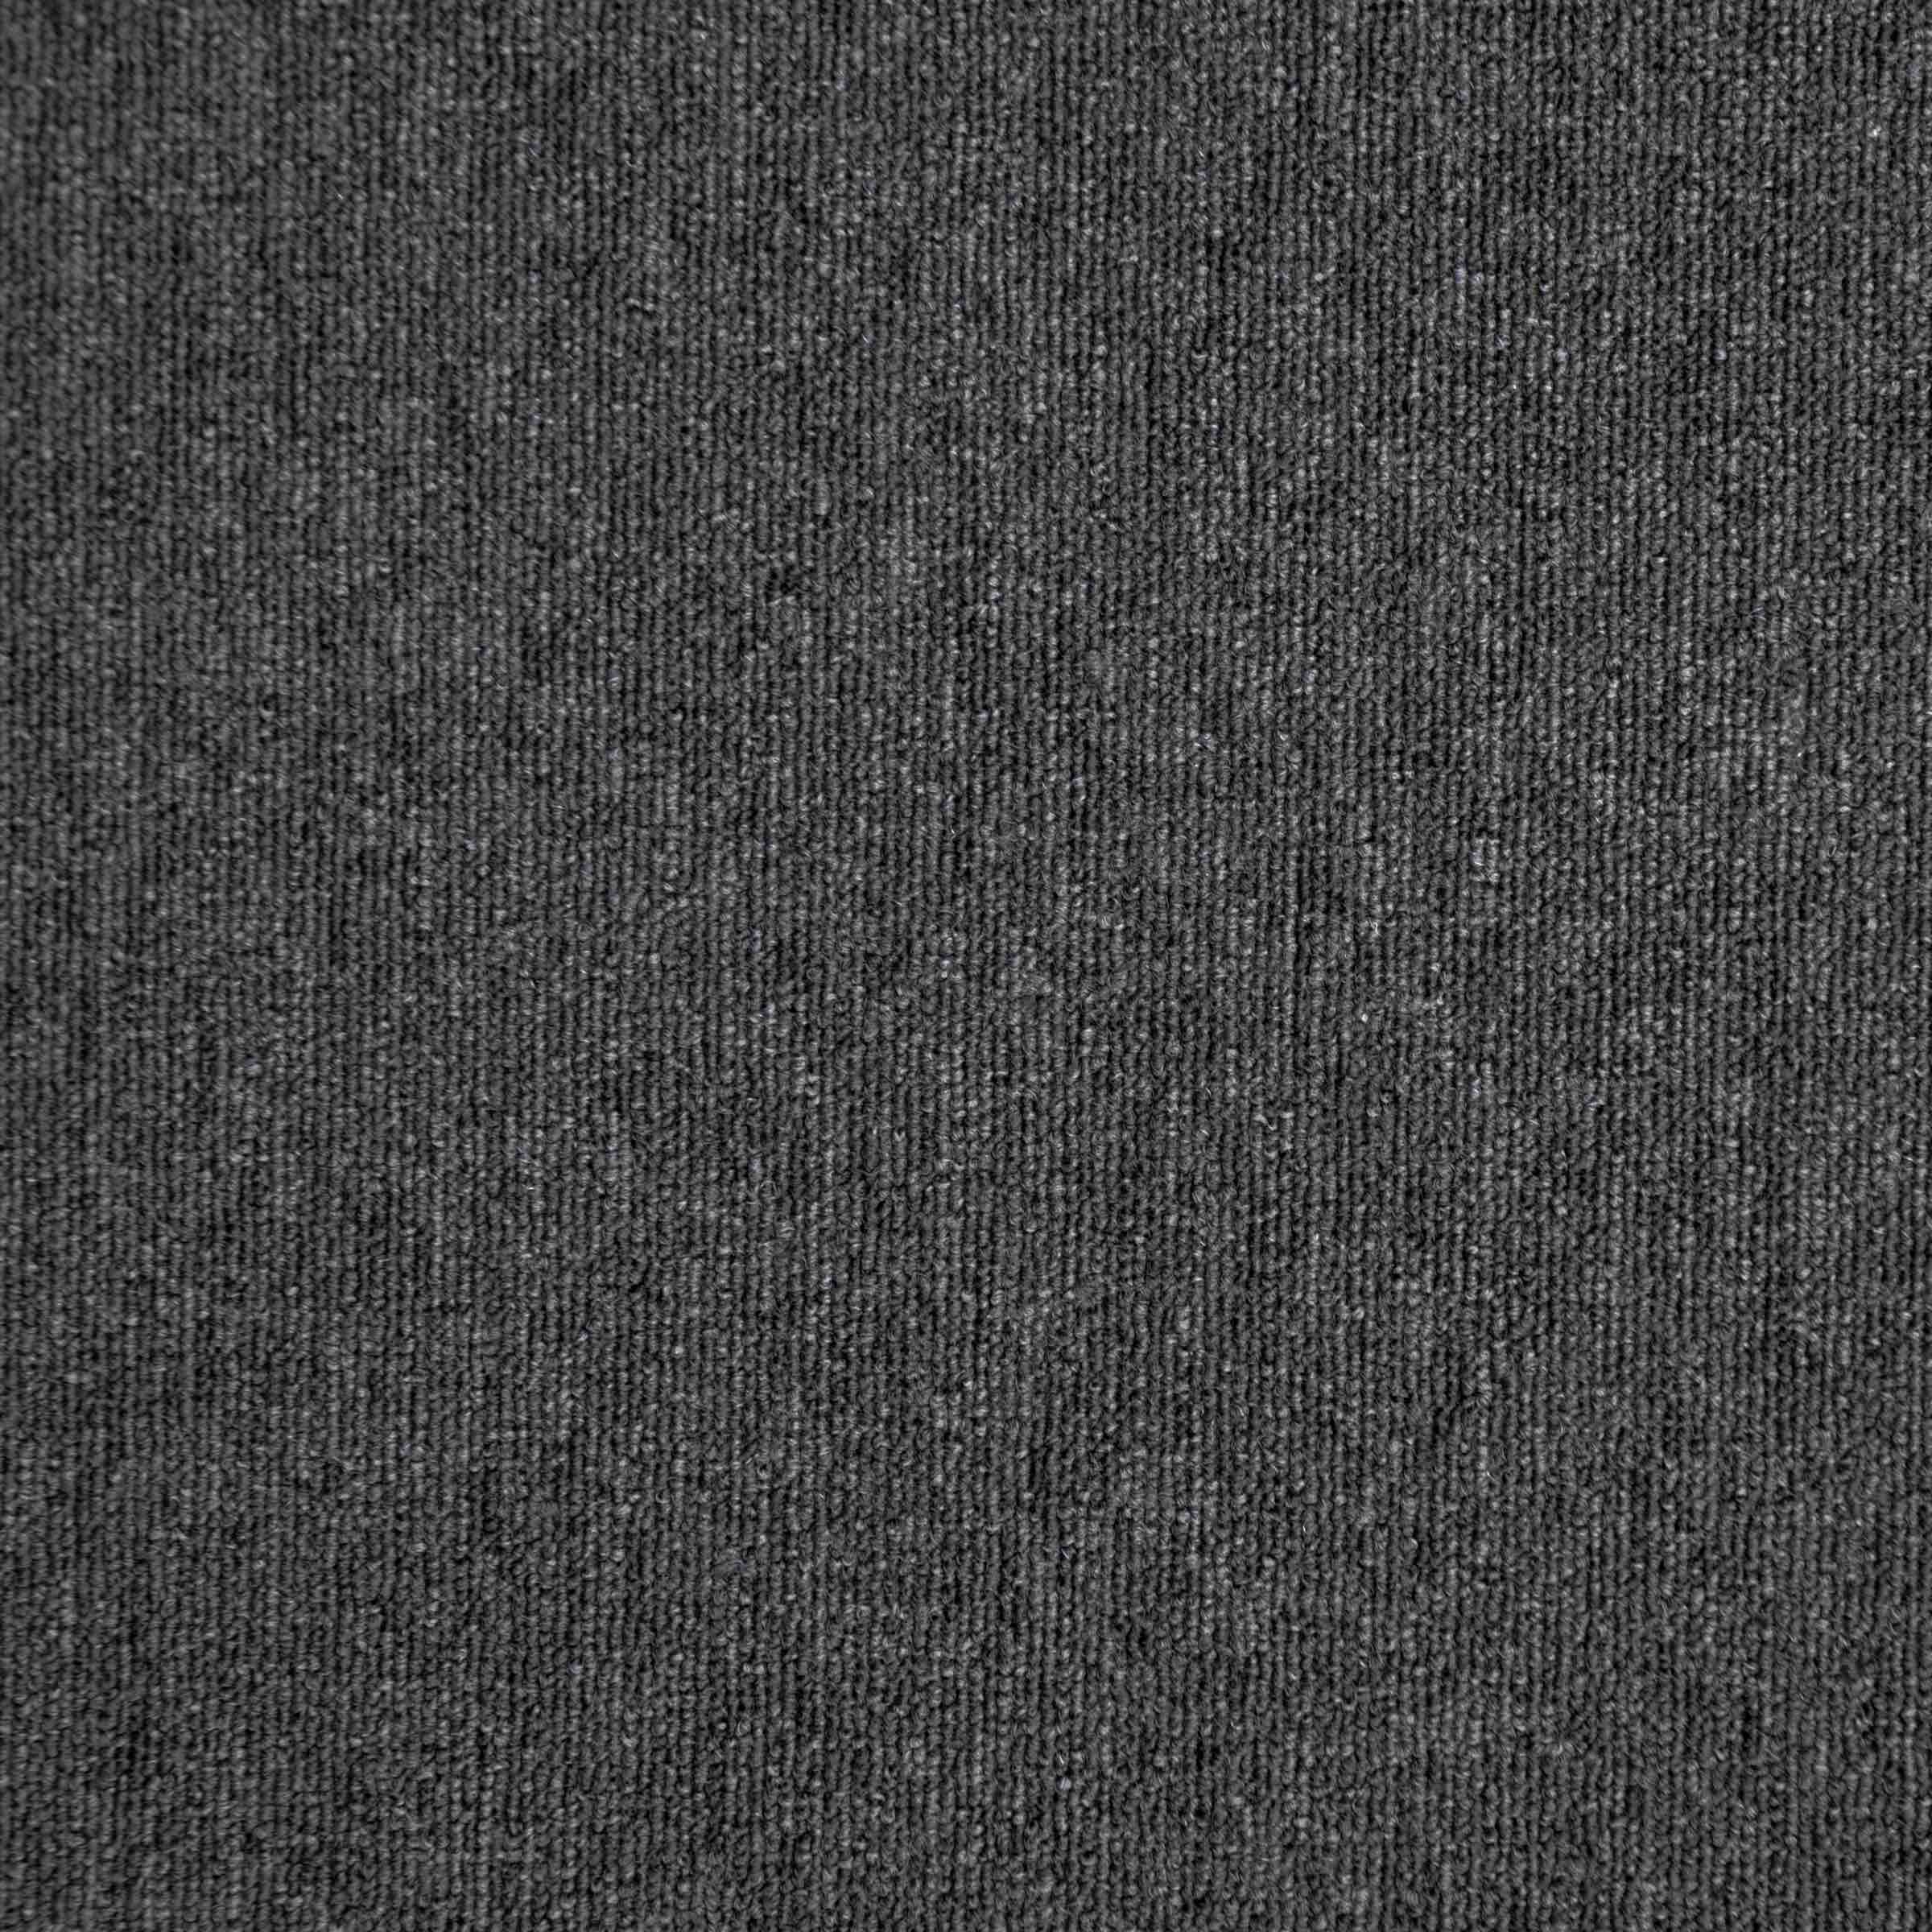 Vital | 8007 | Paragon Carpet Tiles | Commercial Carpet Tiles